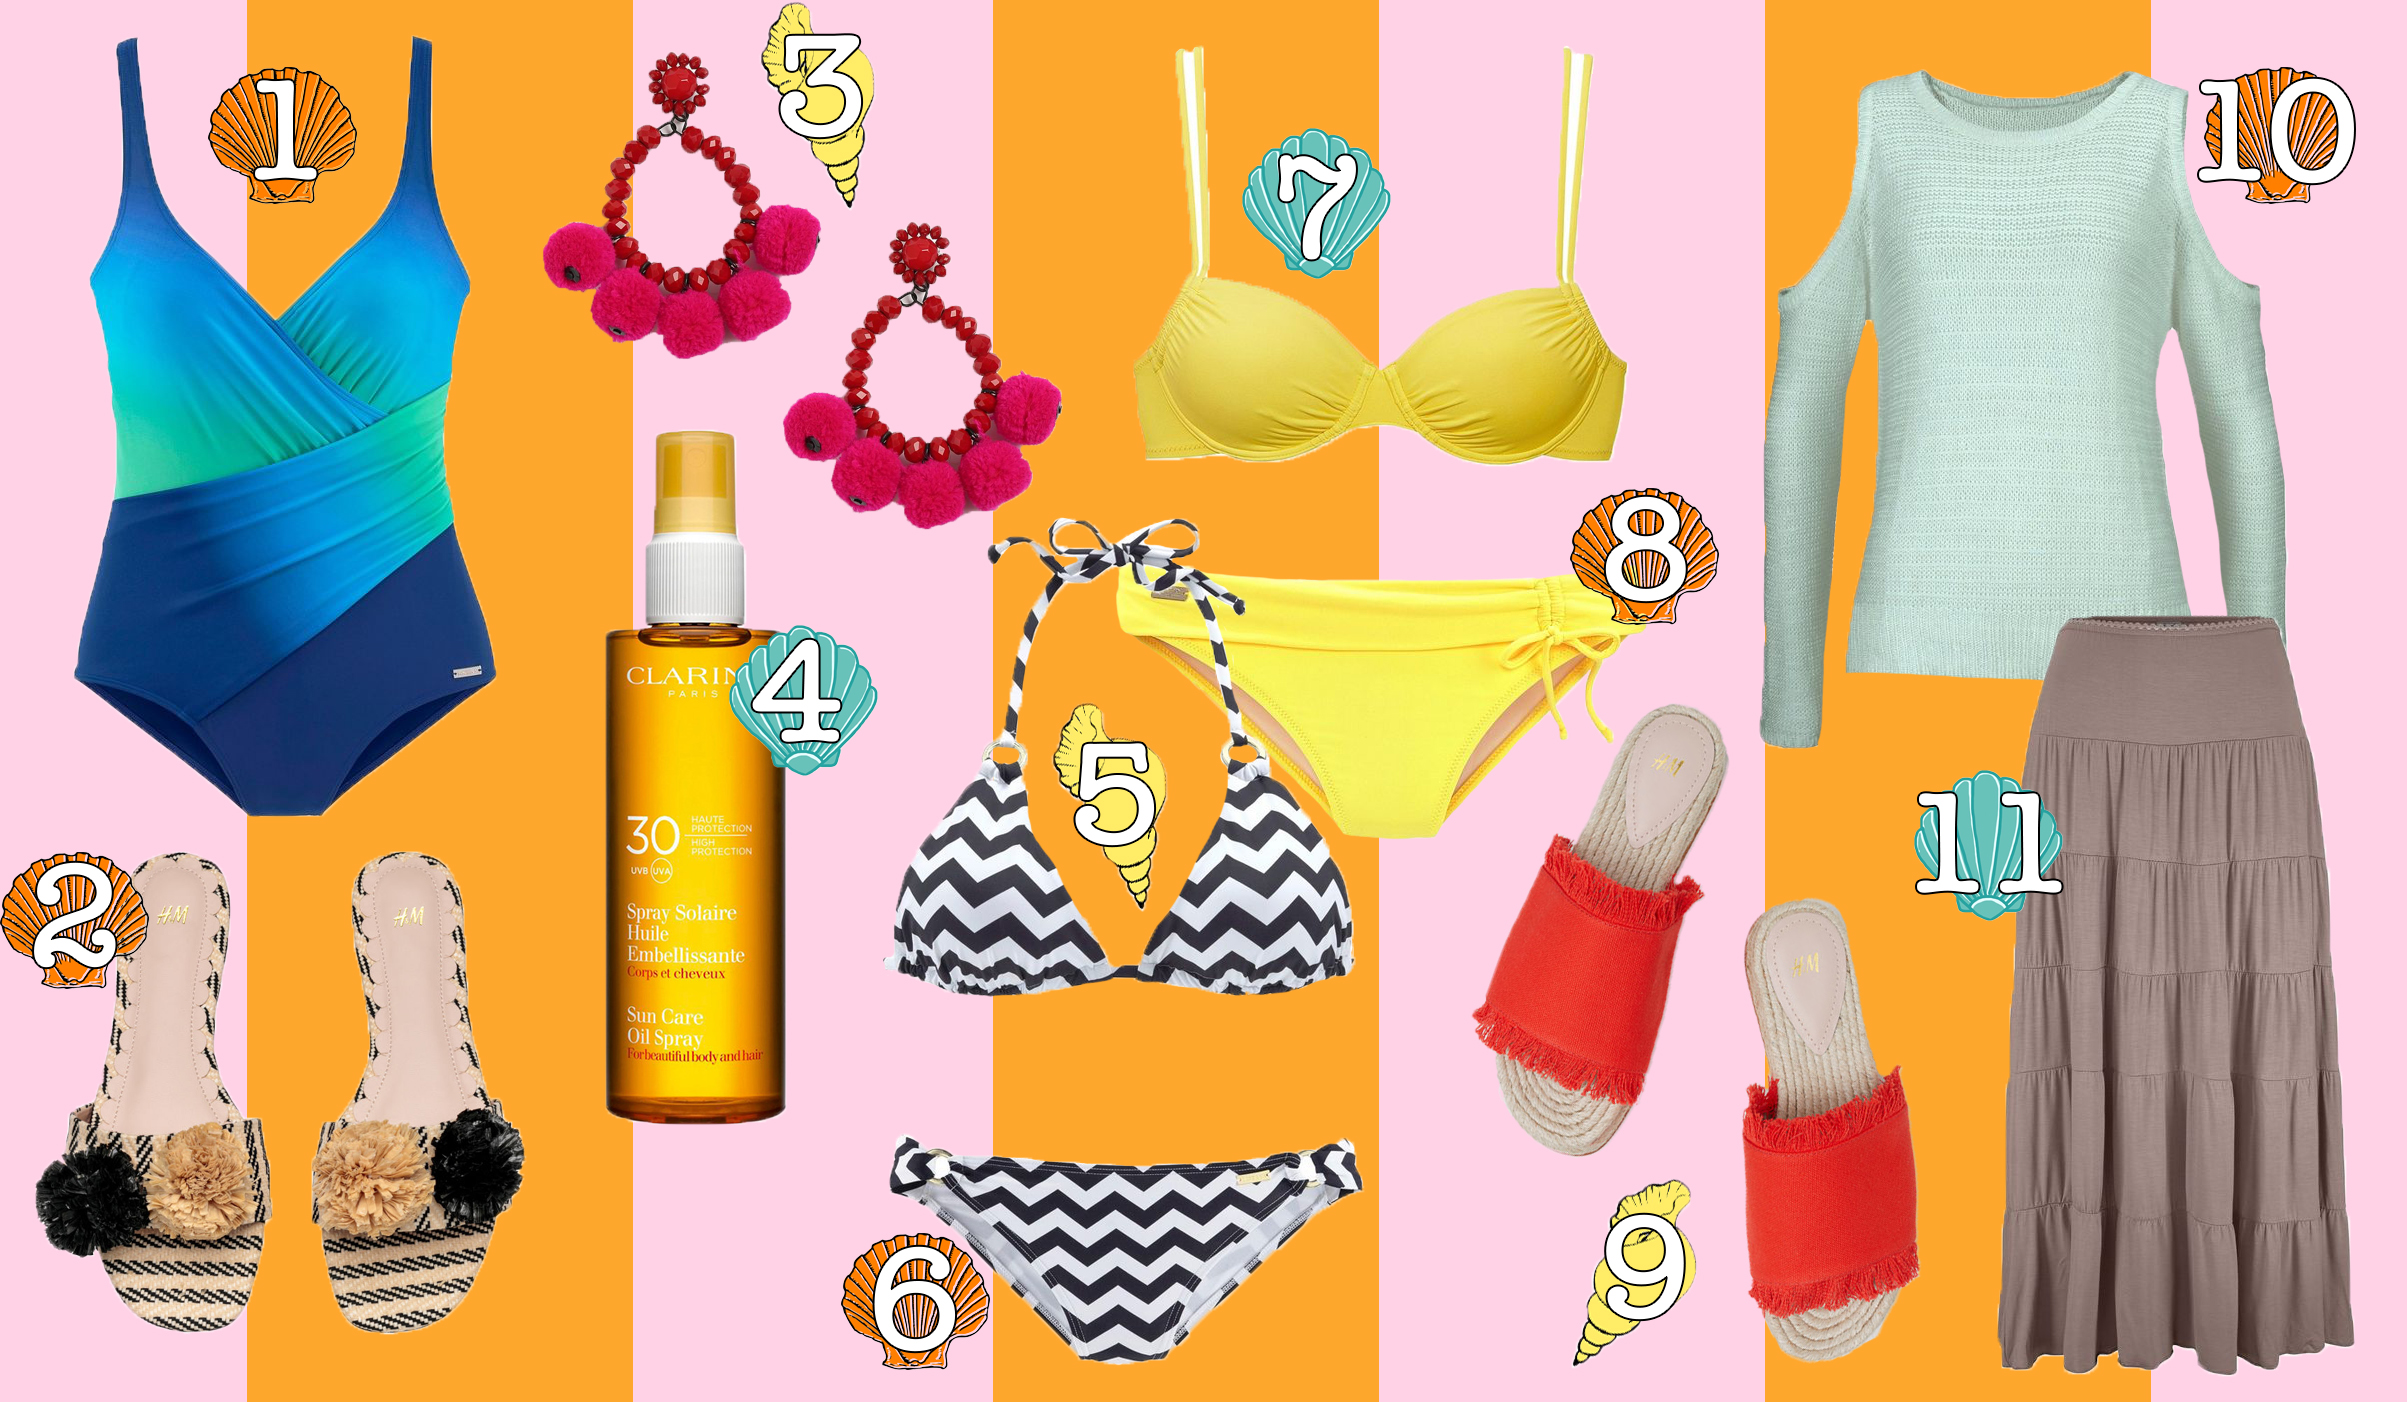 floortjeloves, wishlist, shopping, shop, trends, swimwear, the swimwear guide, swimwear guide, lascana, clarins, H&M, Topshop, bikini, summer shopping